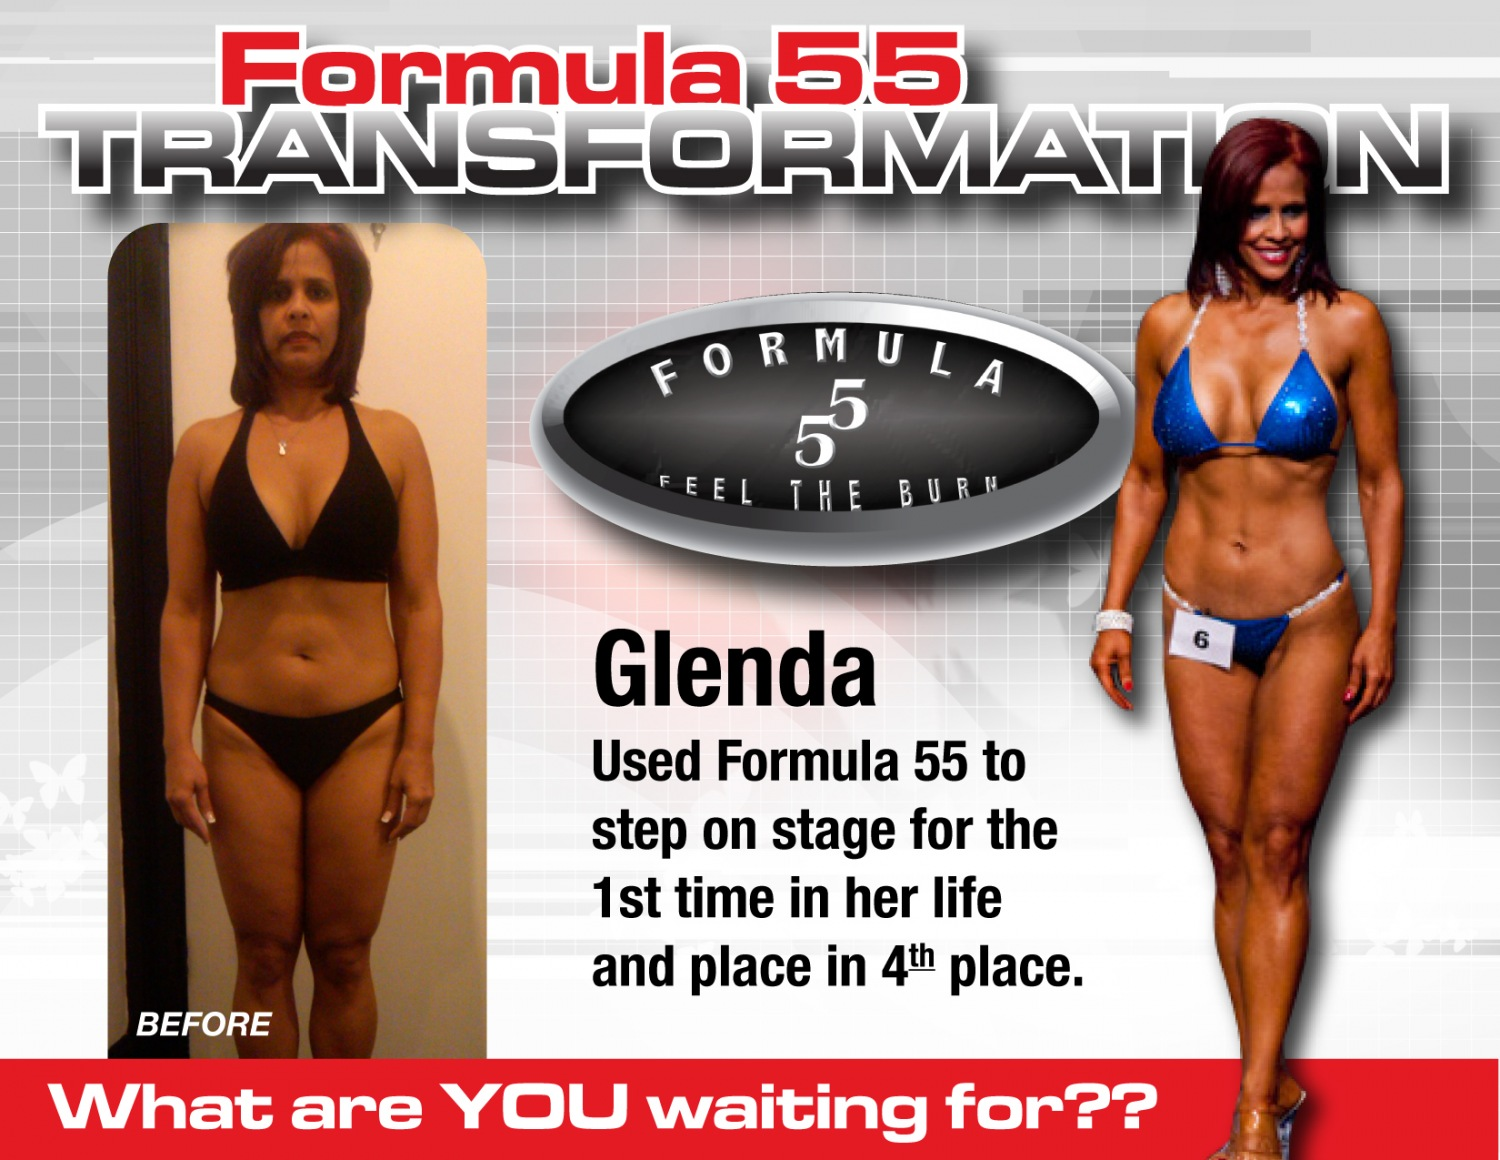 form_55_Transformation_Glenda.jpg